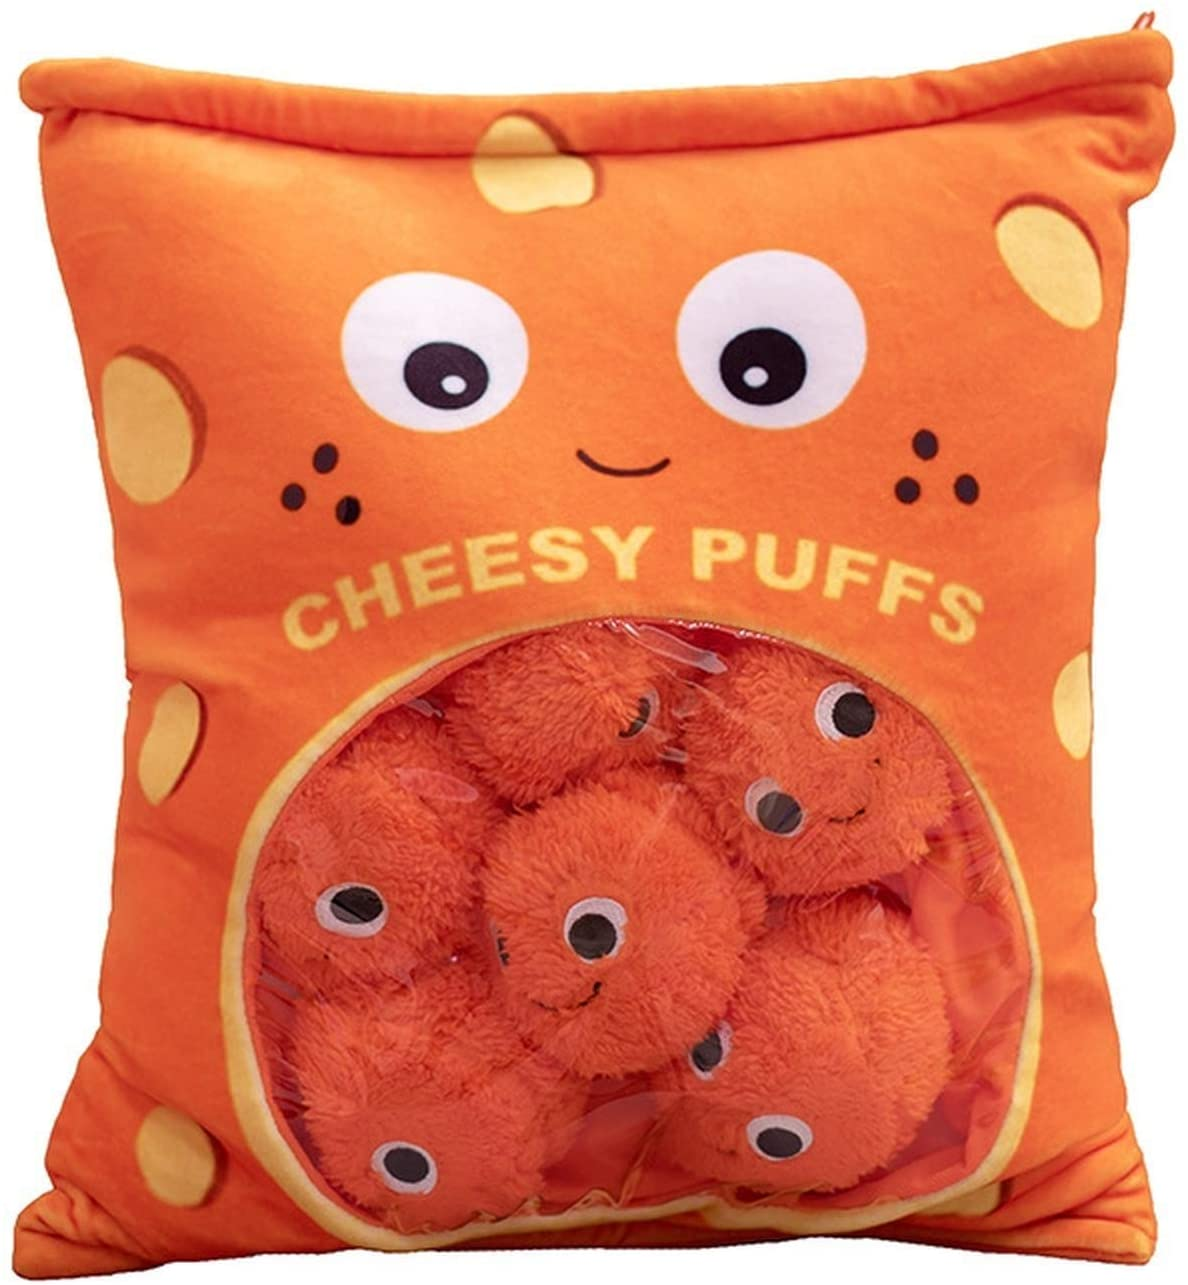 Cheesy Puffs Plush Toy, Stuffed Soft Snack Pillow Plush Puff Toy, Cushion, Delicious Food Dessert Package, Puff Cheese Puff Stuffed Toy Game Pillow (9 Balls)